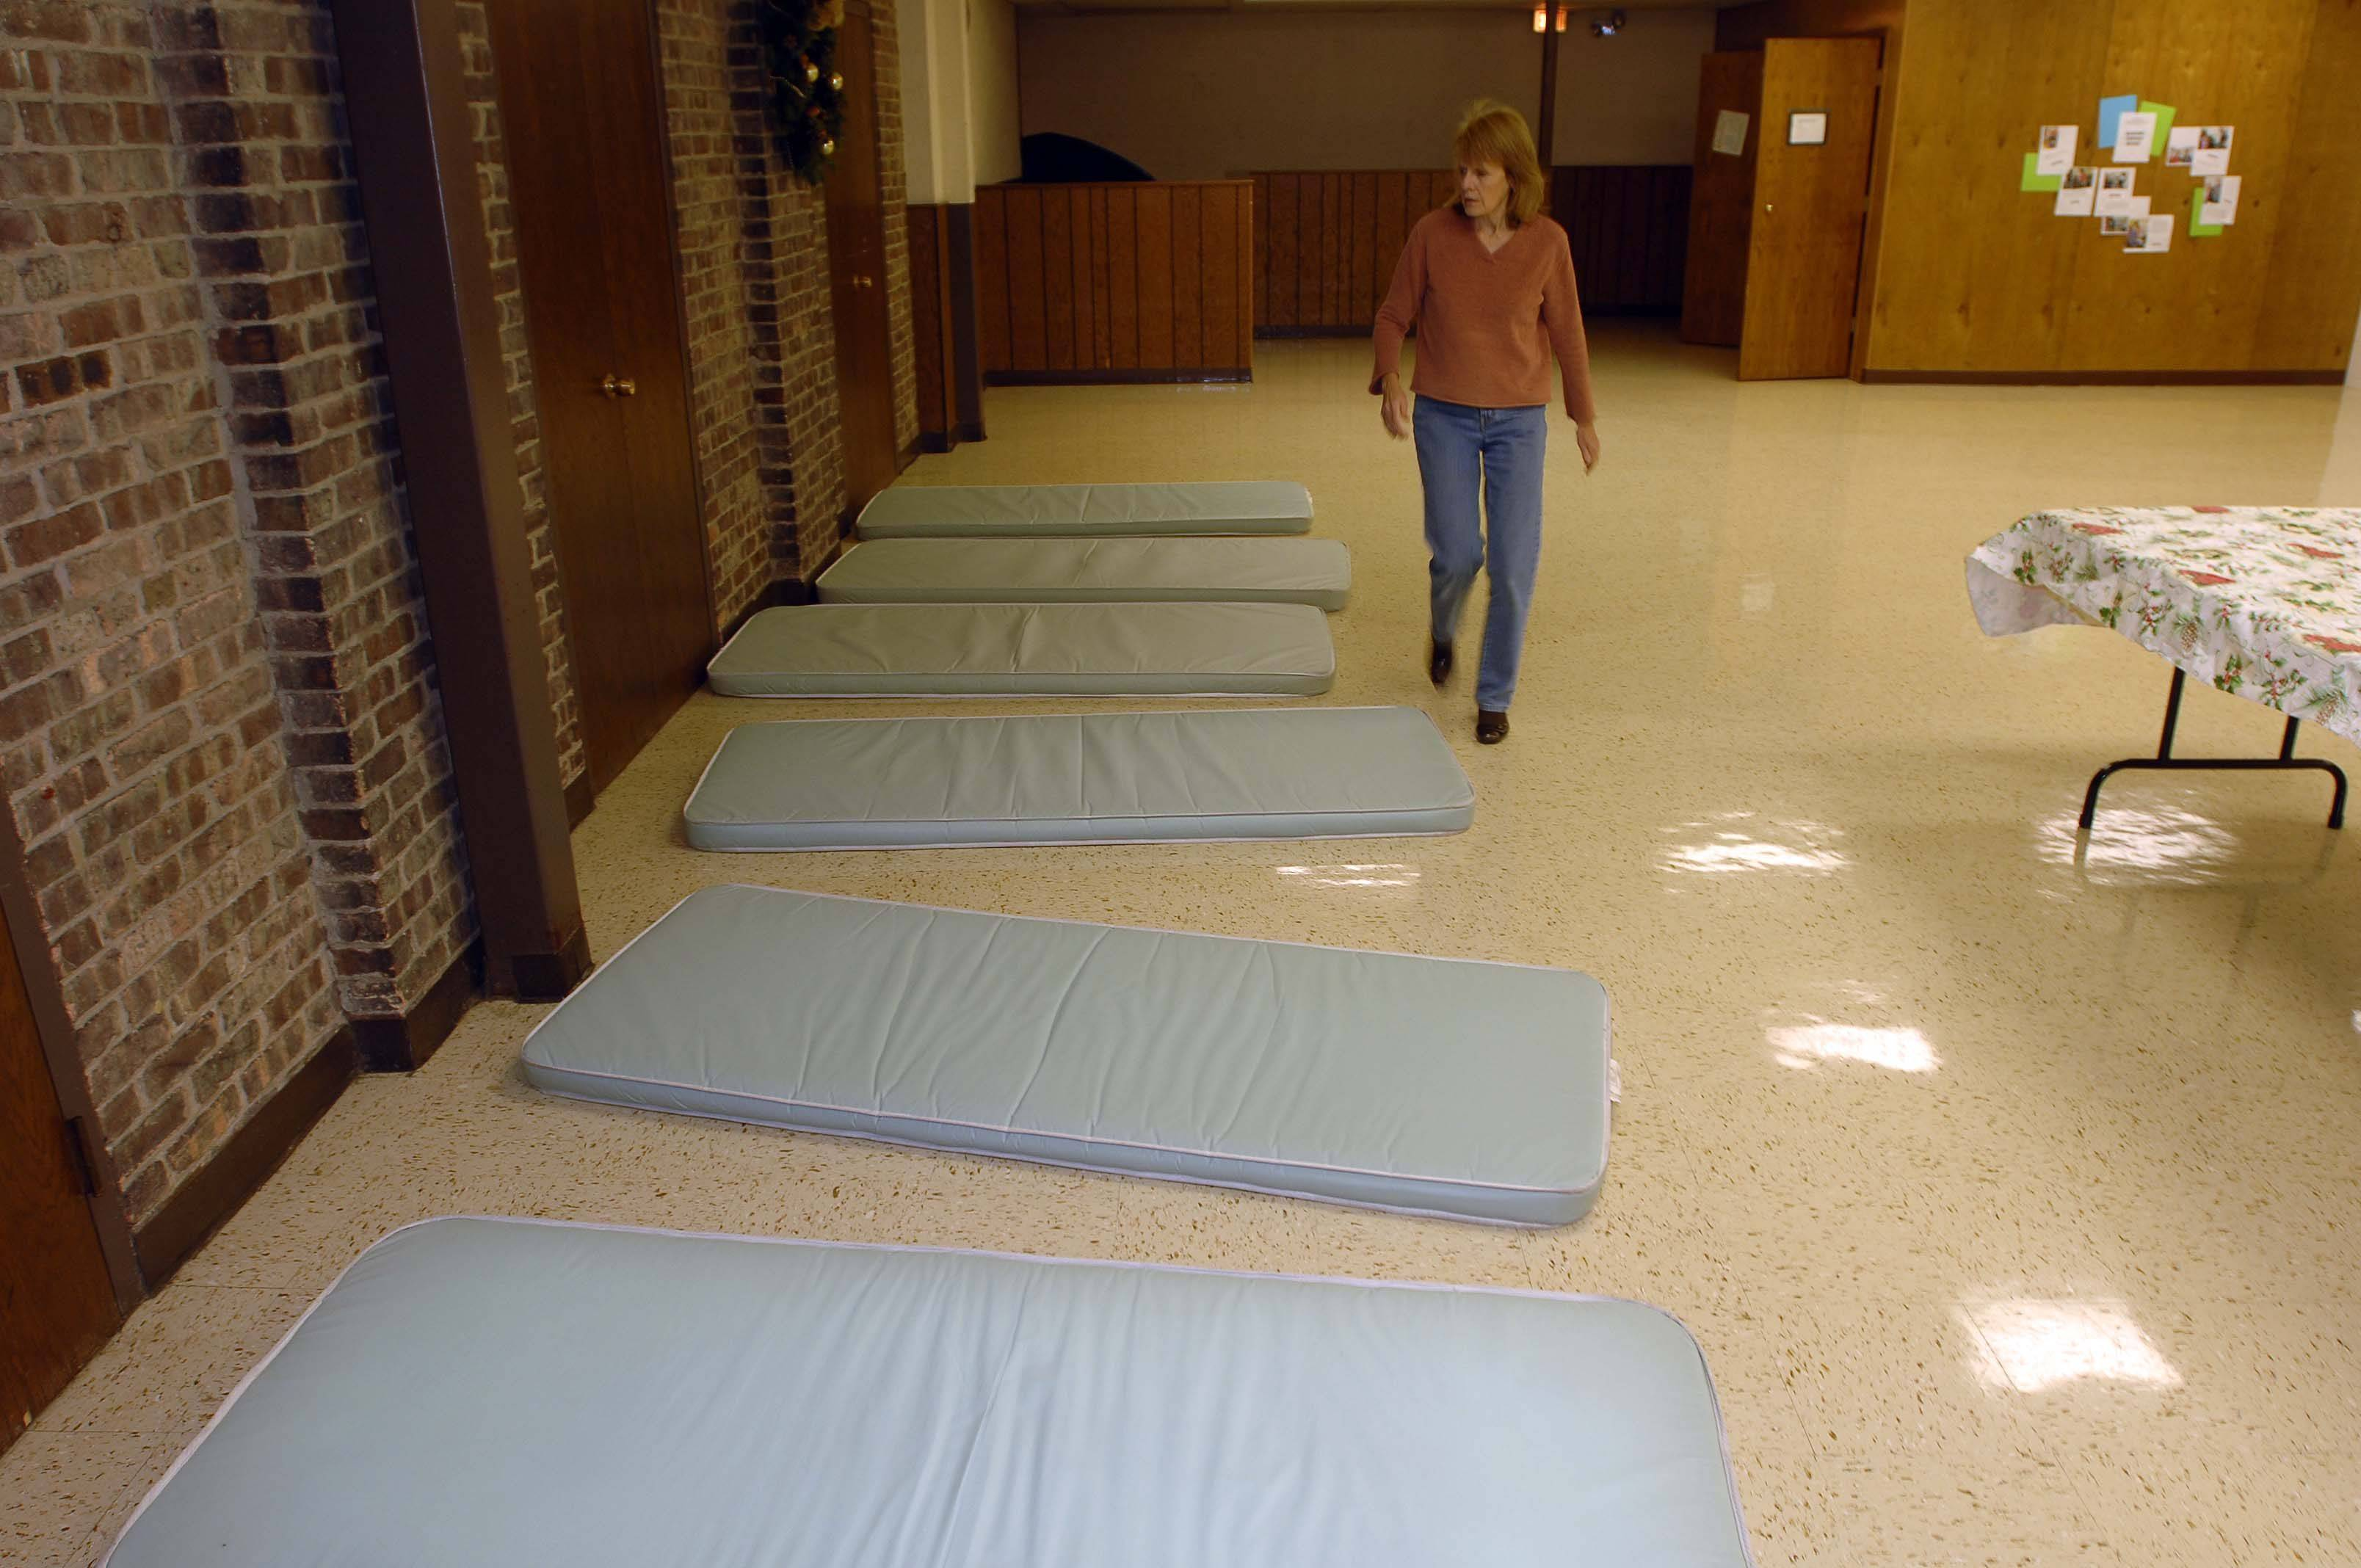 Sleeping pads line the floor at the PADS shelter at First Congregational Church in Naperville Wednesday.